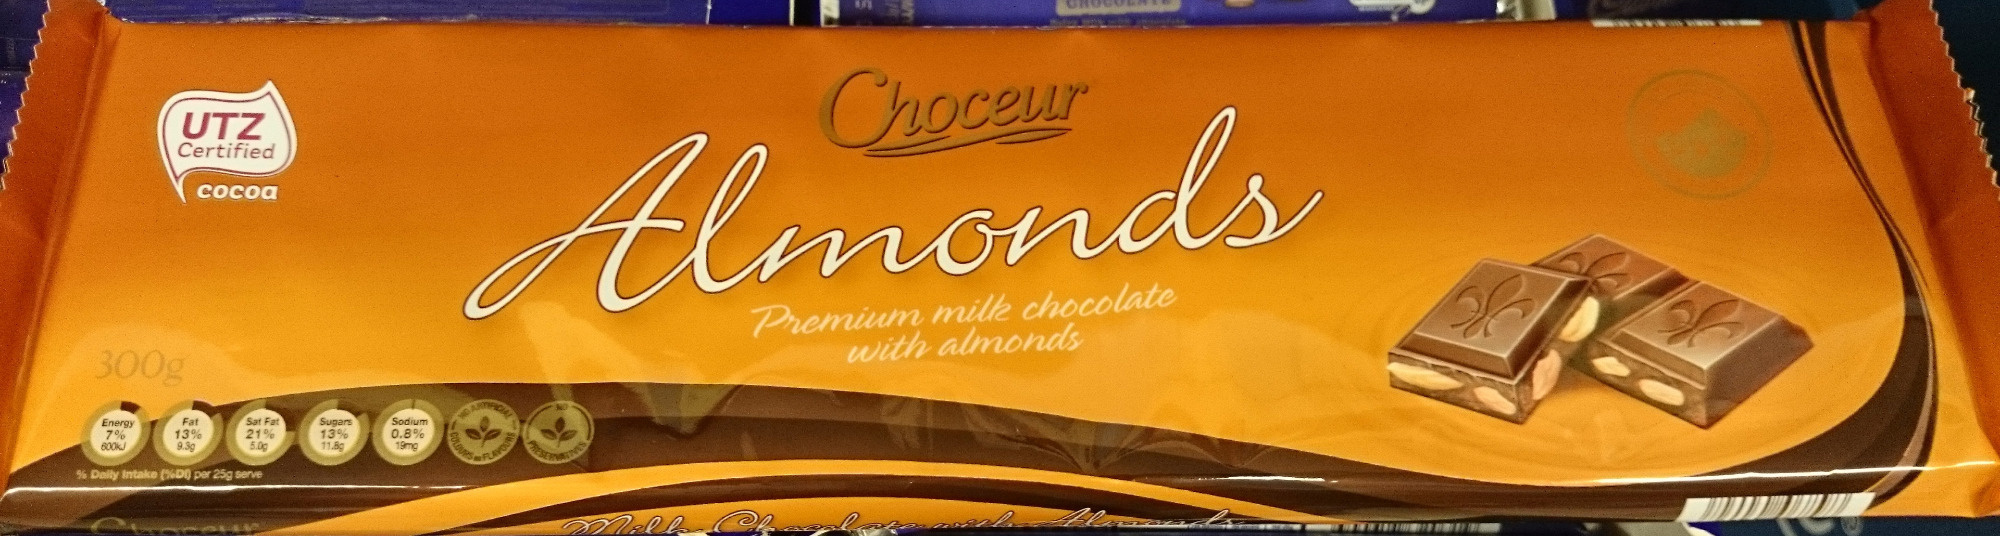 Almonds Chocolate Block - Product - en